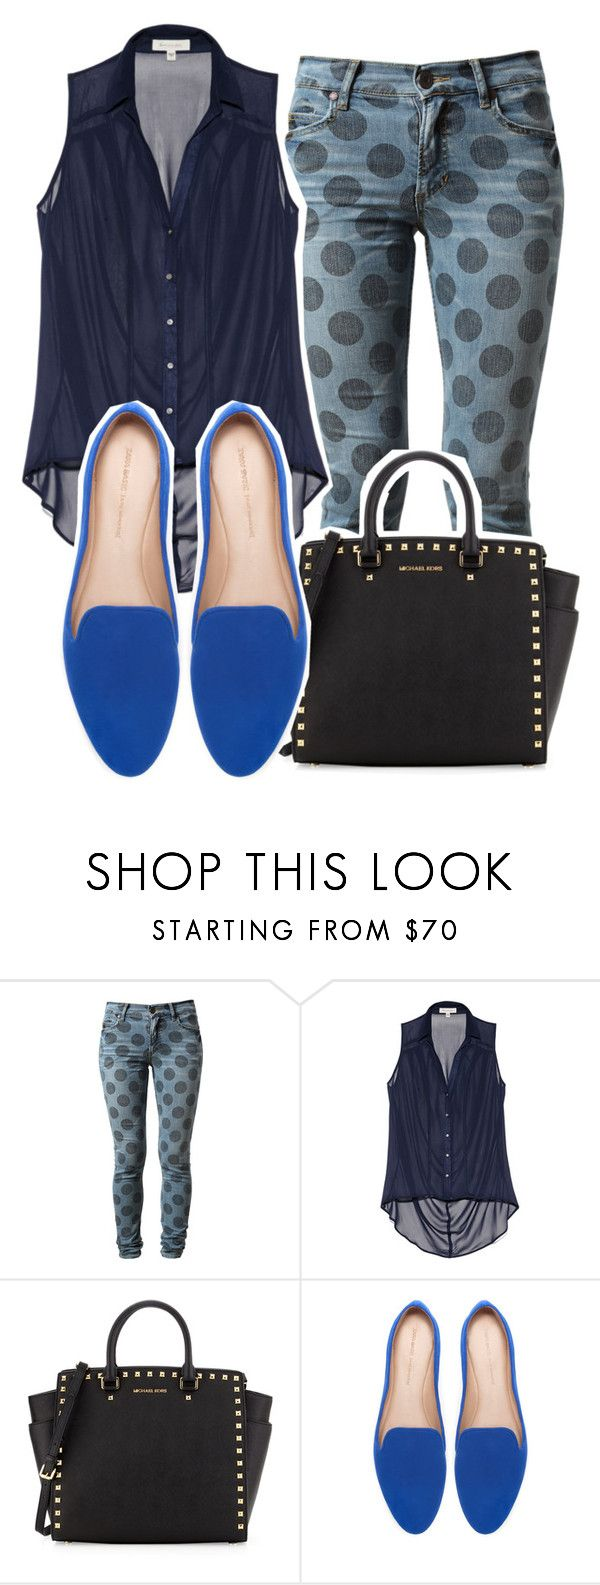 """Bless your soul, you've got your head in the clouds~"" by style-police ❤ liked on Polyvore featuring House of Holland, Vince Camuto, MICHAEL Michael Kors and Zara"